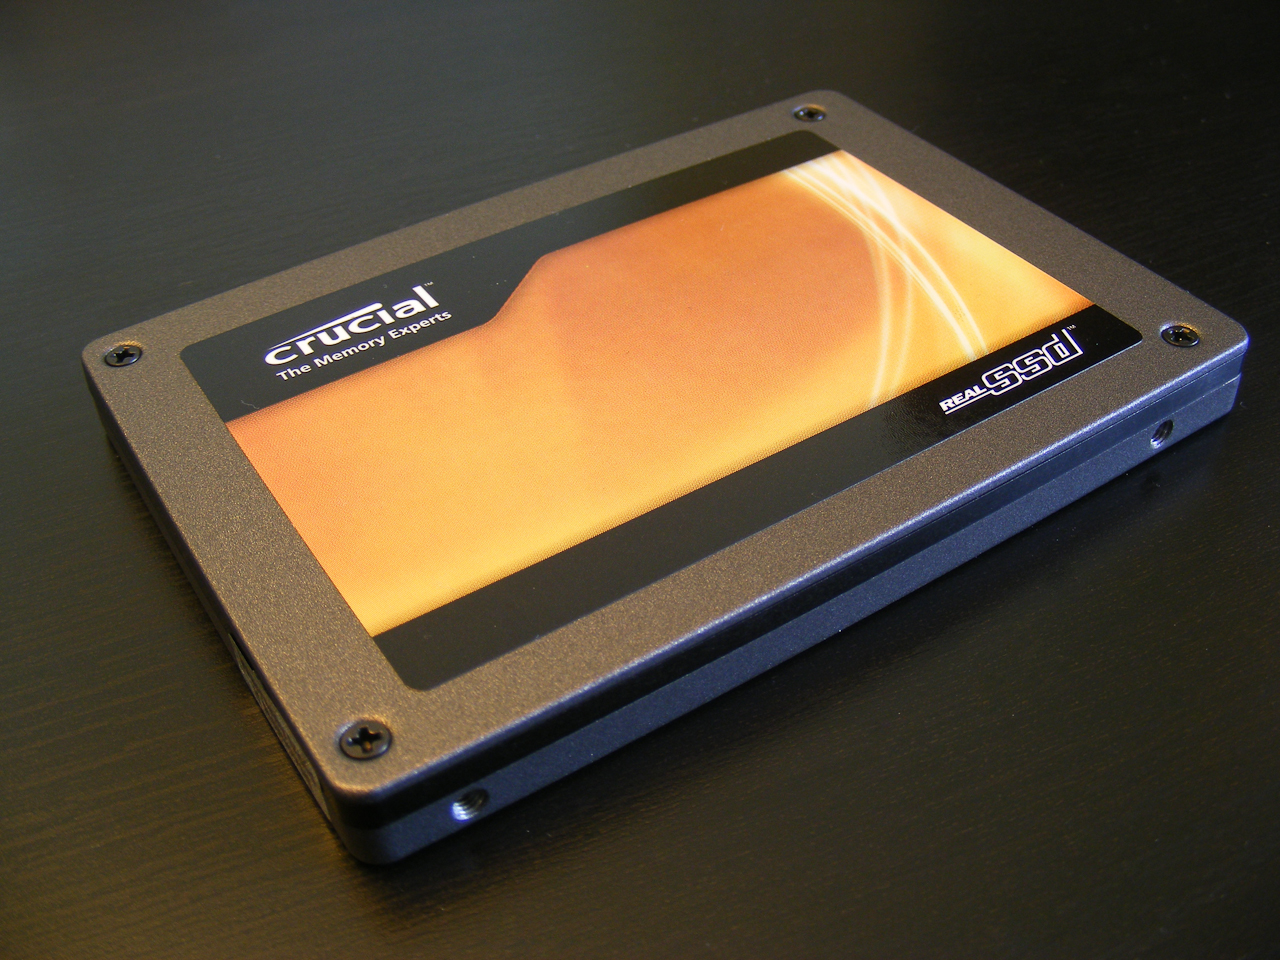 Crucial RealSSD C300 256GB (front)